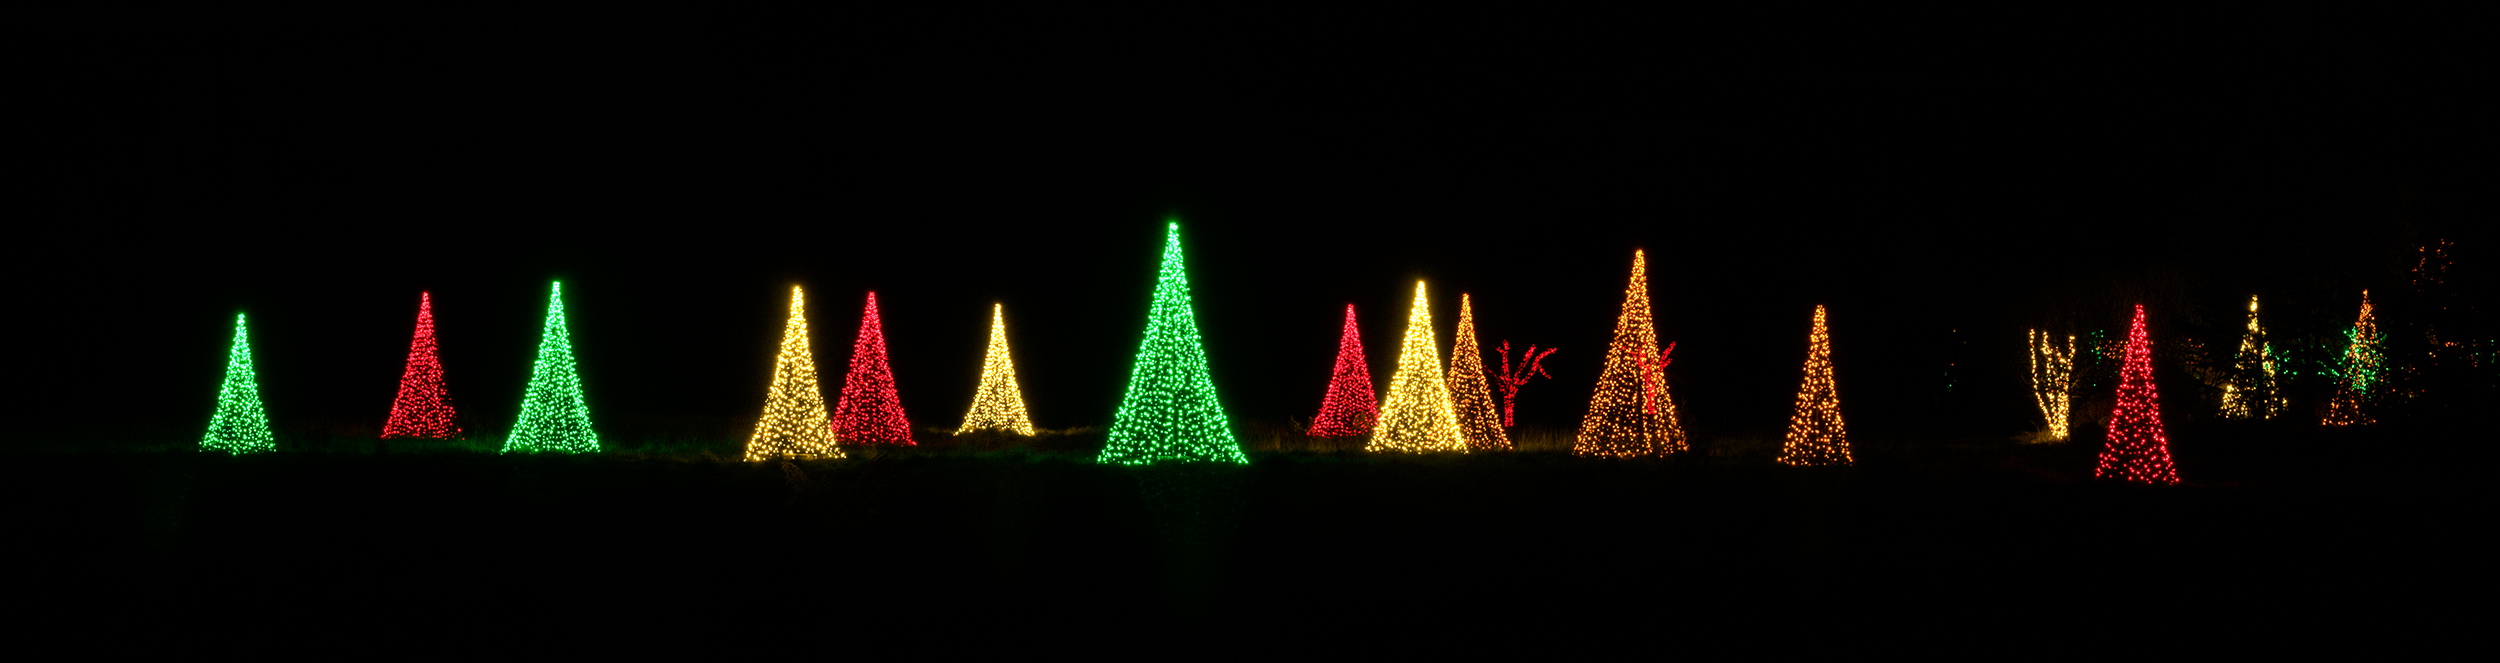 The choreography of lights at the  Holidays at the Garden  has been skillfully and artfully done giving visitors something new to see at every turn.